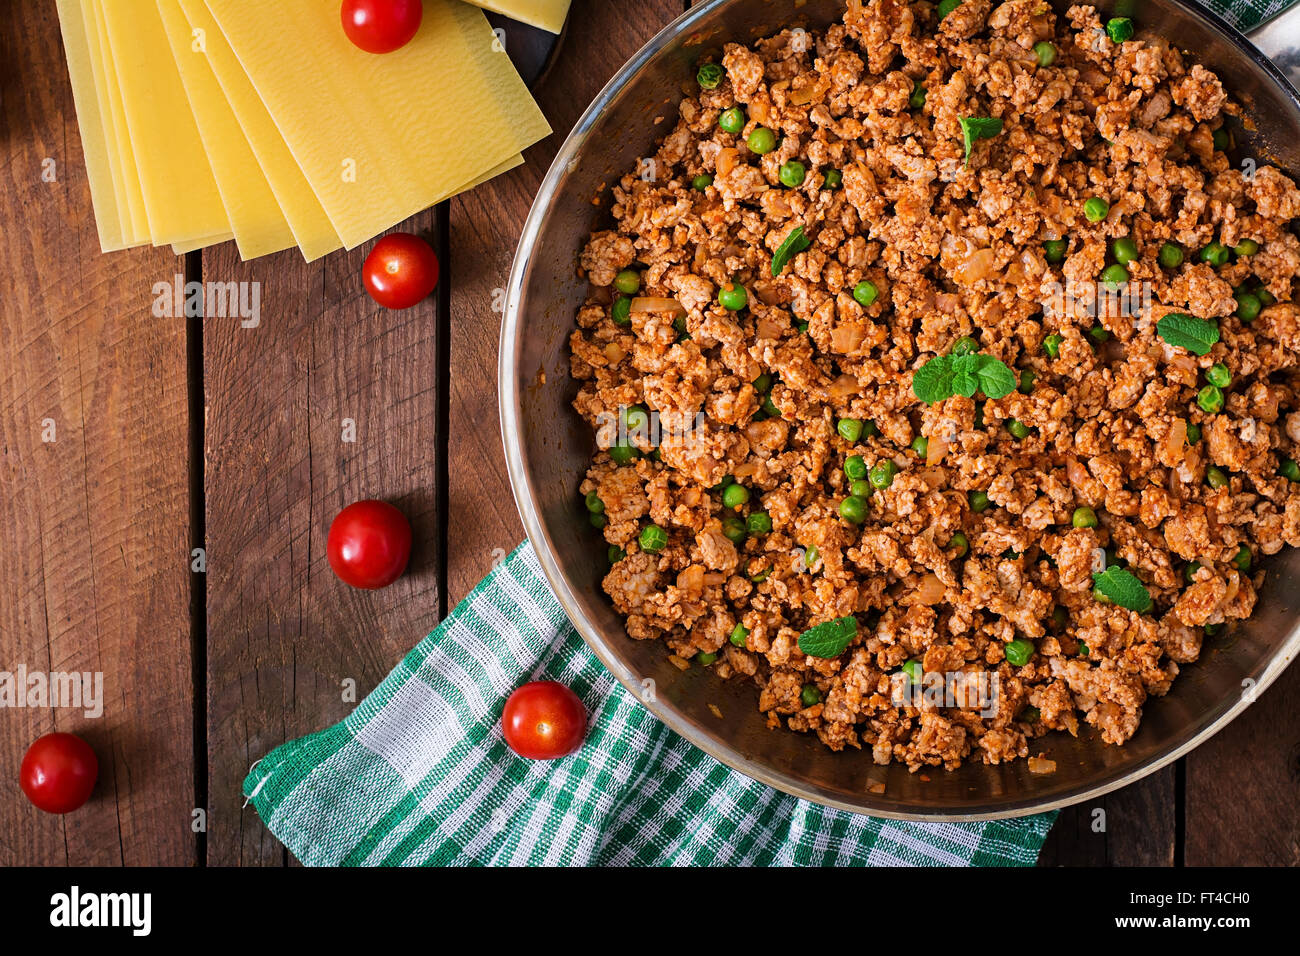 how to make lasagna with mince meat